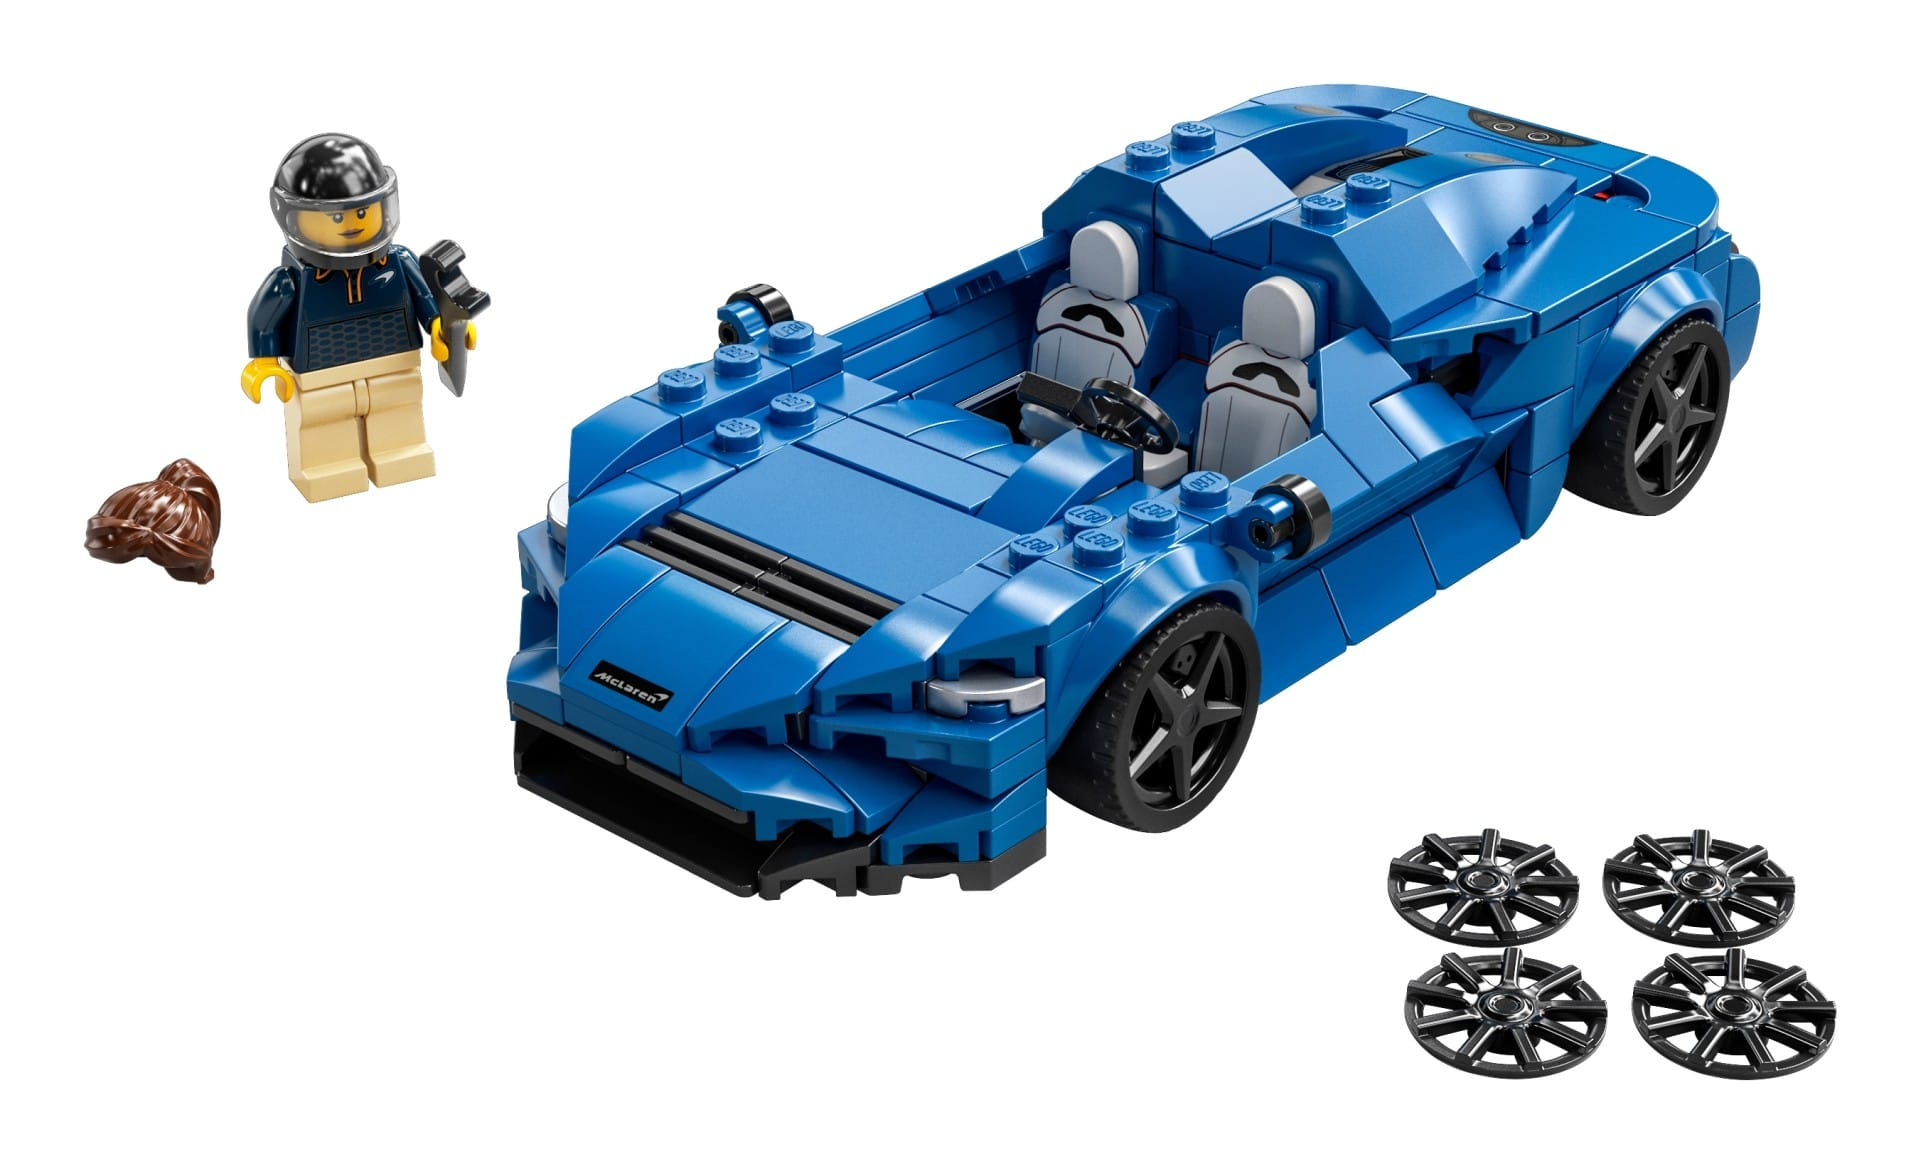 LEGO's new Speed Champions sets include Ford, Toyota, and Chevrolet 20